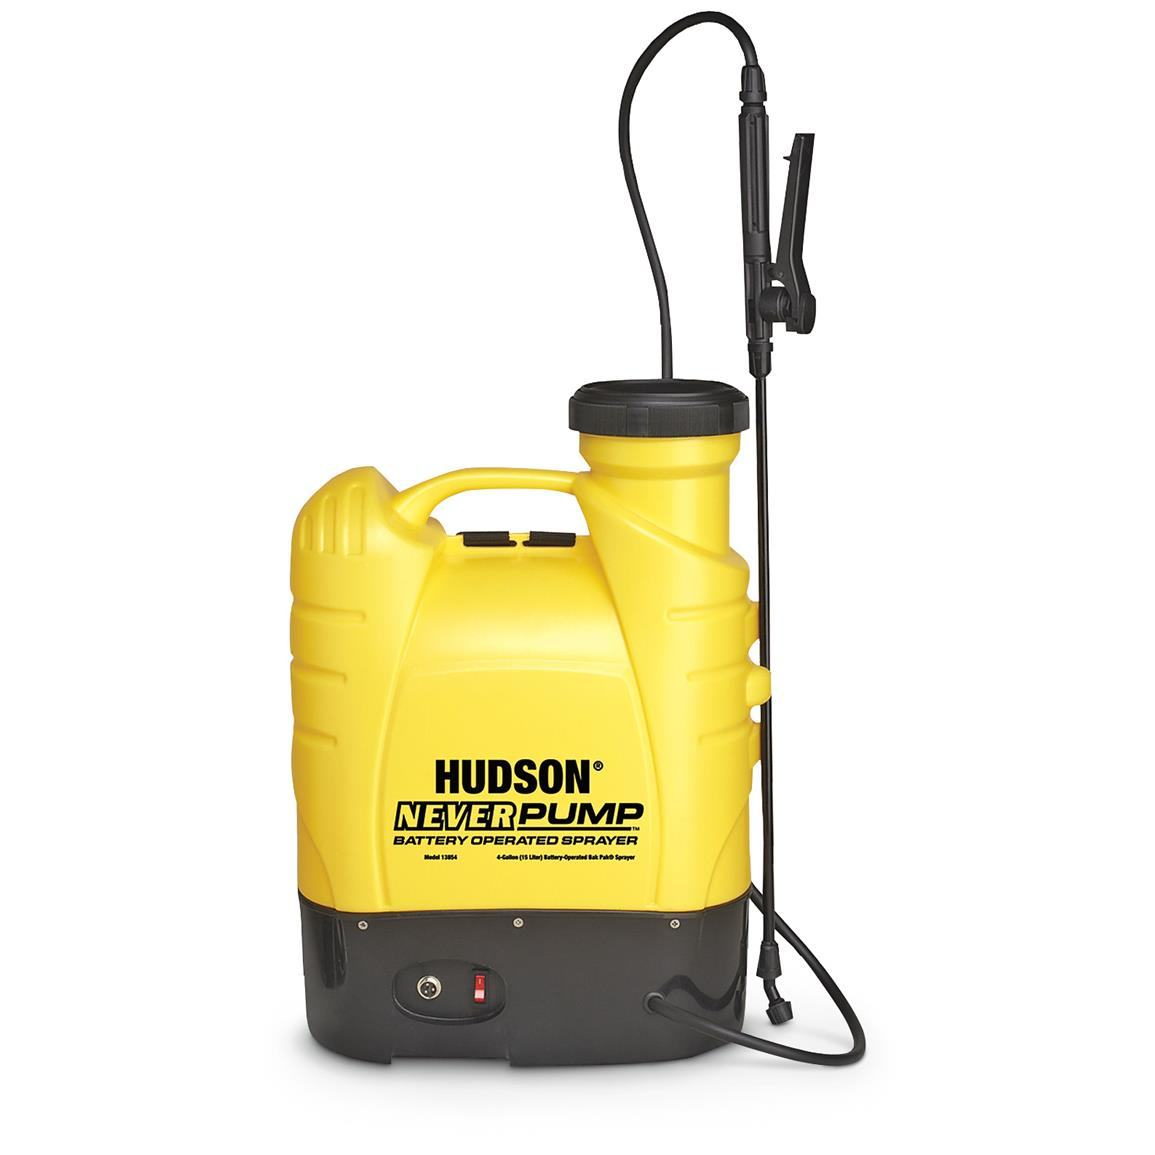 Hudson 4-gallon NeverPump Bak-Pak Sprayer